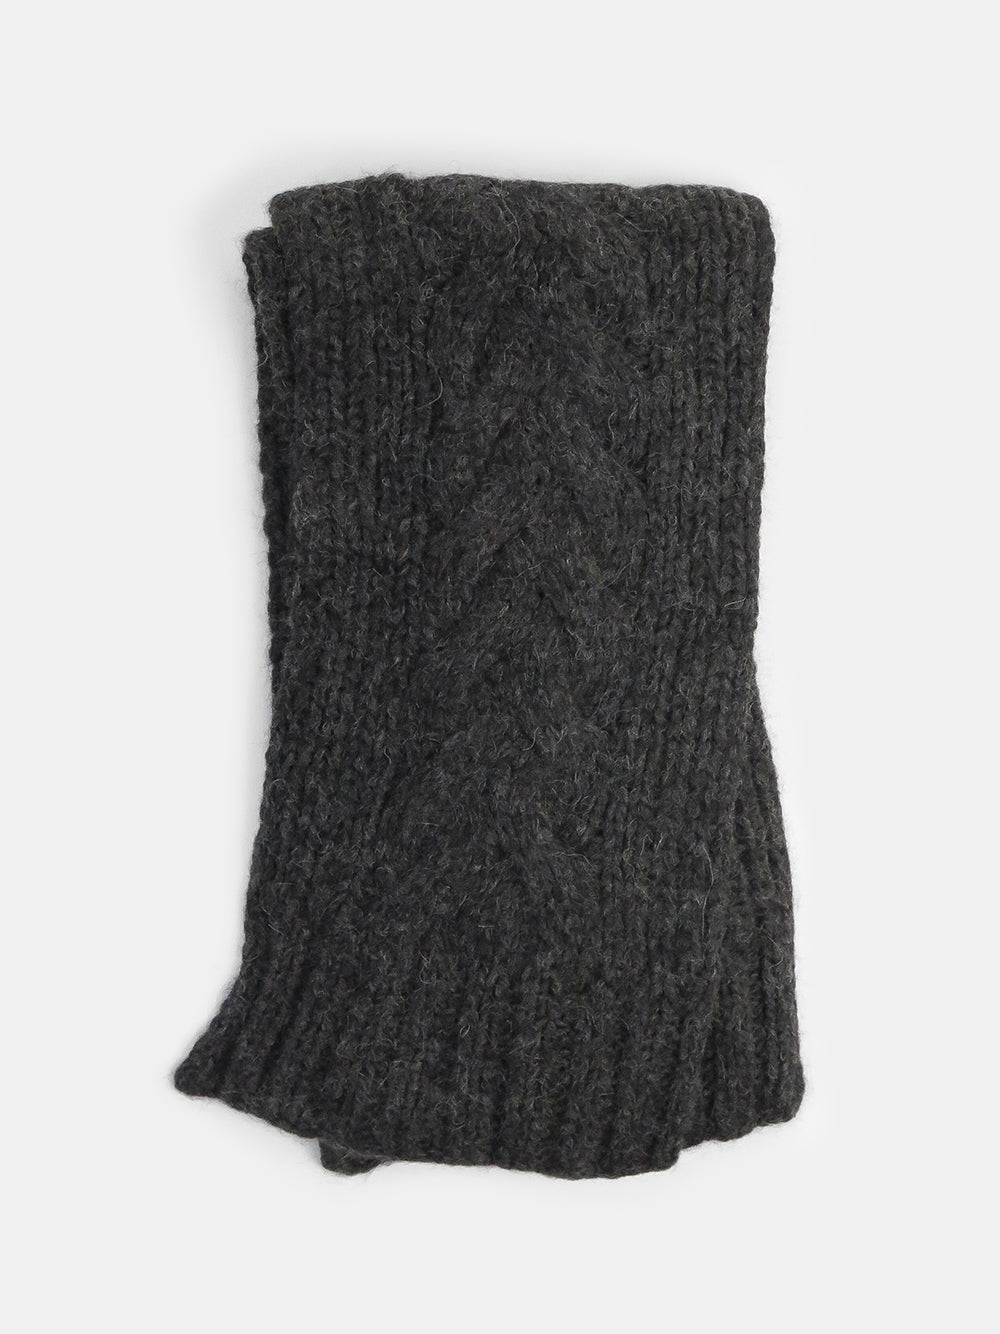 cable scarf in charcoal